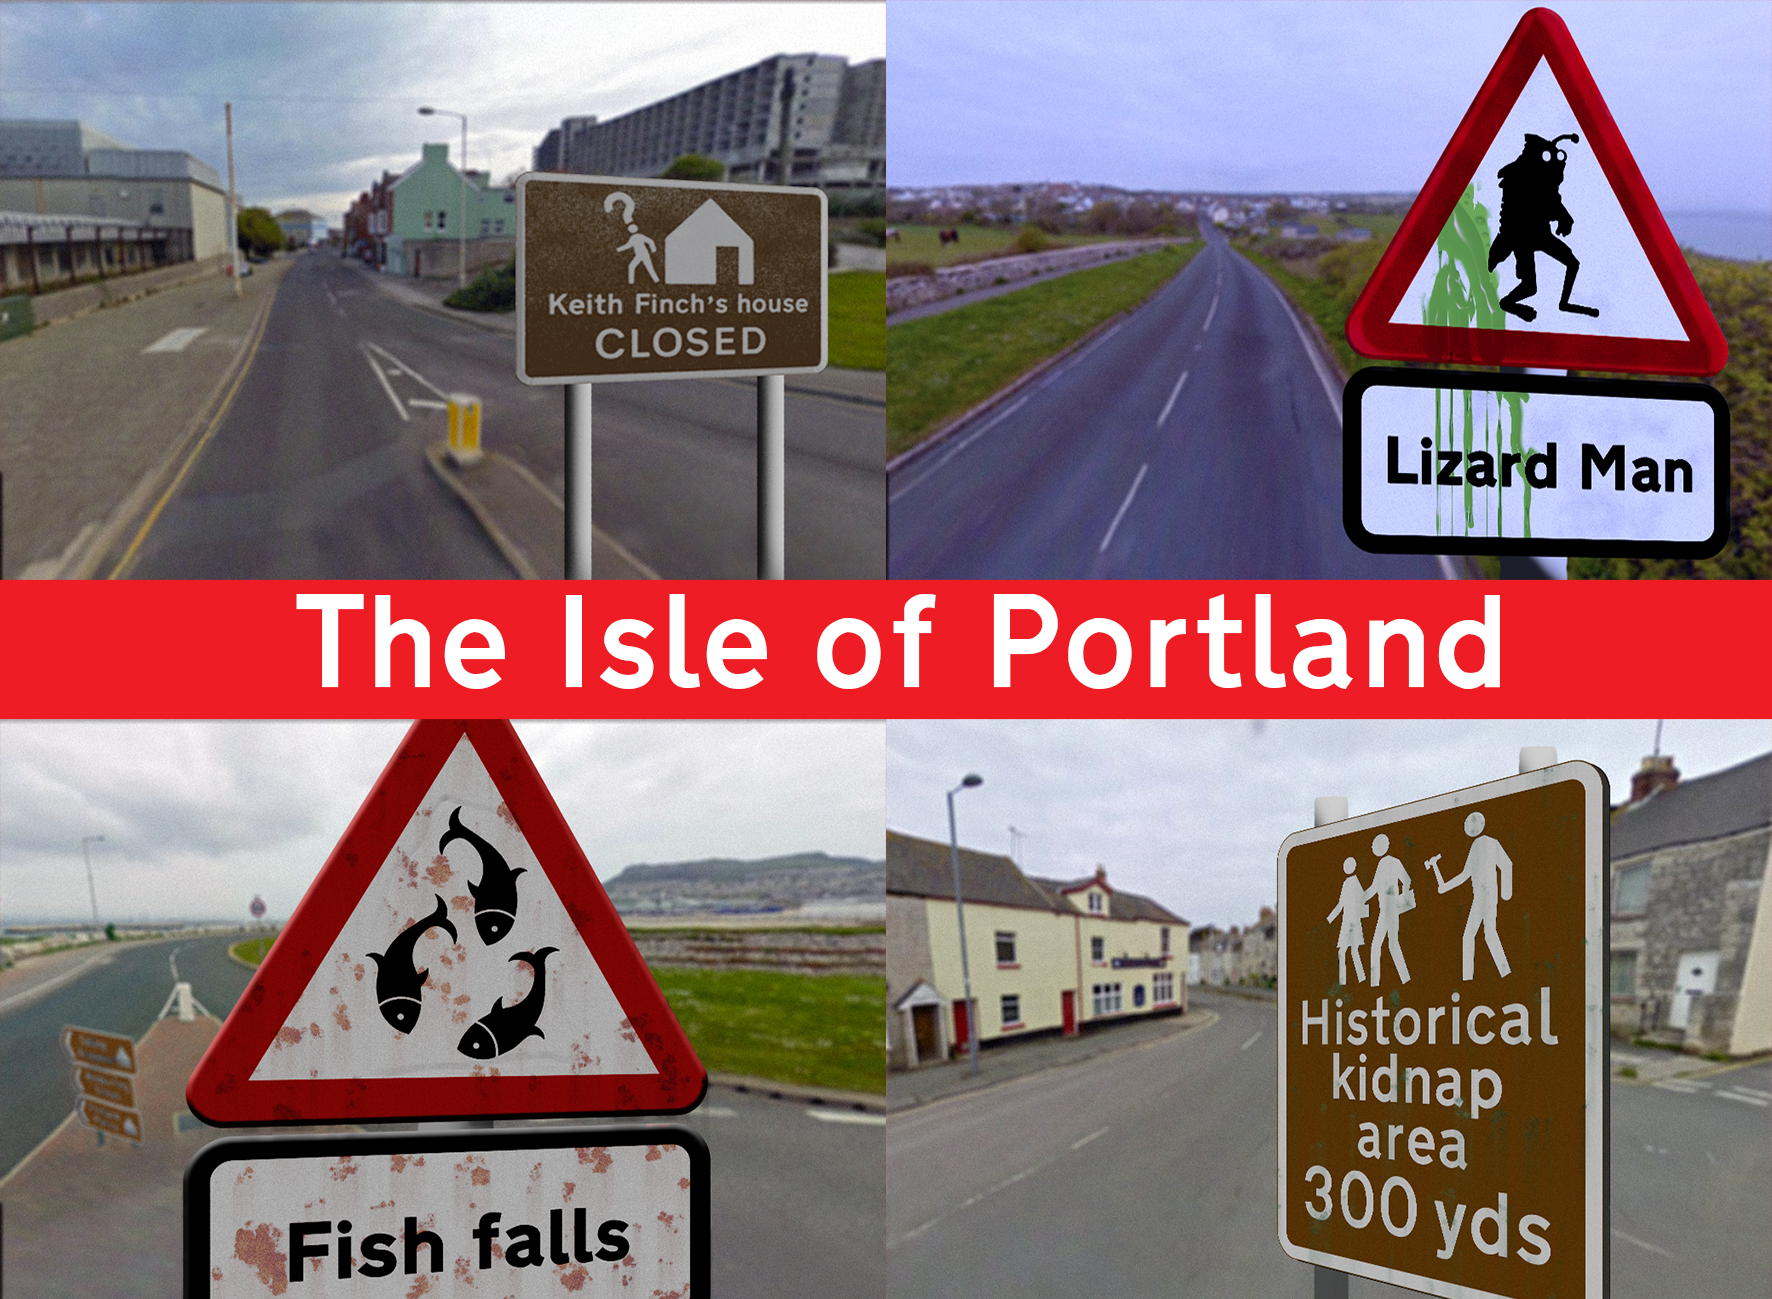 "A postcard labelled ""The Isle of Portland"" and showing four municipal tourist attraction signs: Keith Finch's House (CLOSED), Lizard Man, Fish Falls, Historical Kidnap Area (300 yds)."